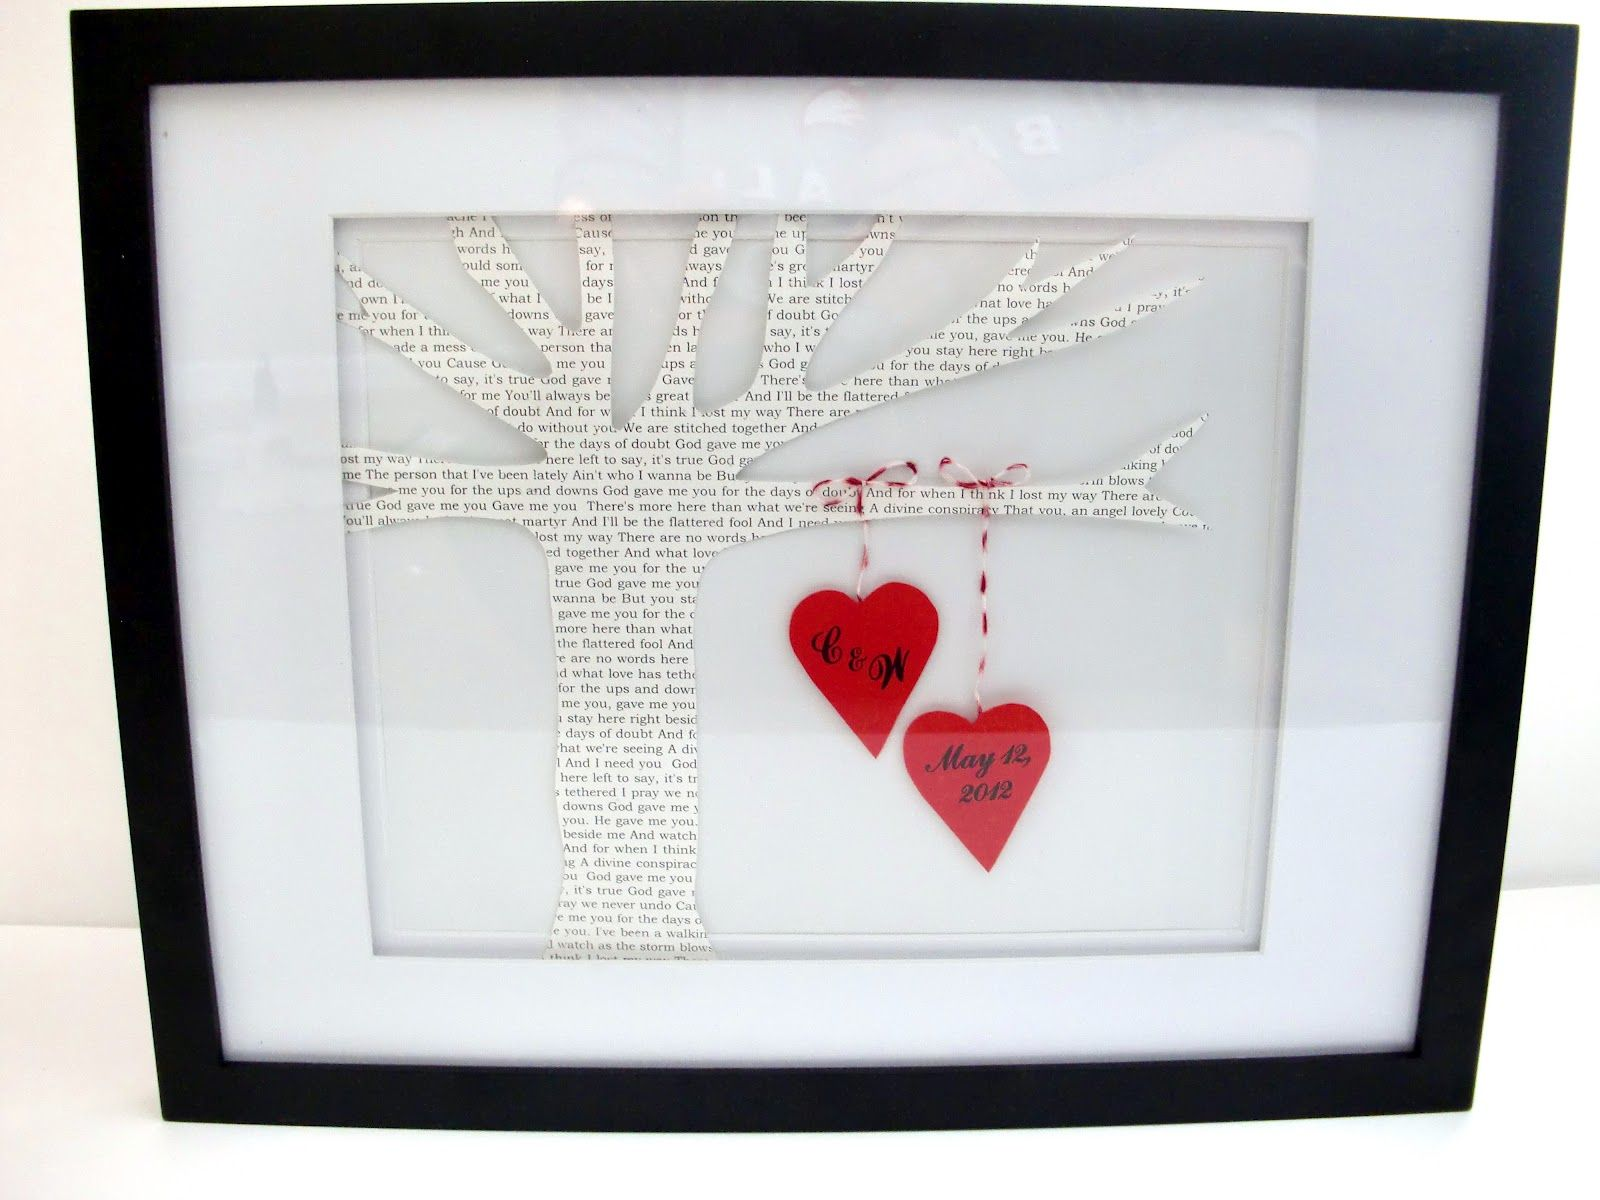 Diy Wedding Memorabilia With First Dance Song As Tree Httphoneysuckleonthevine